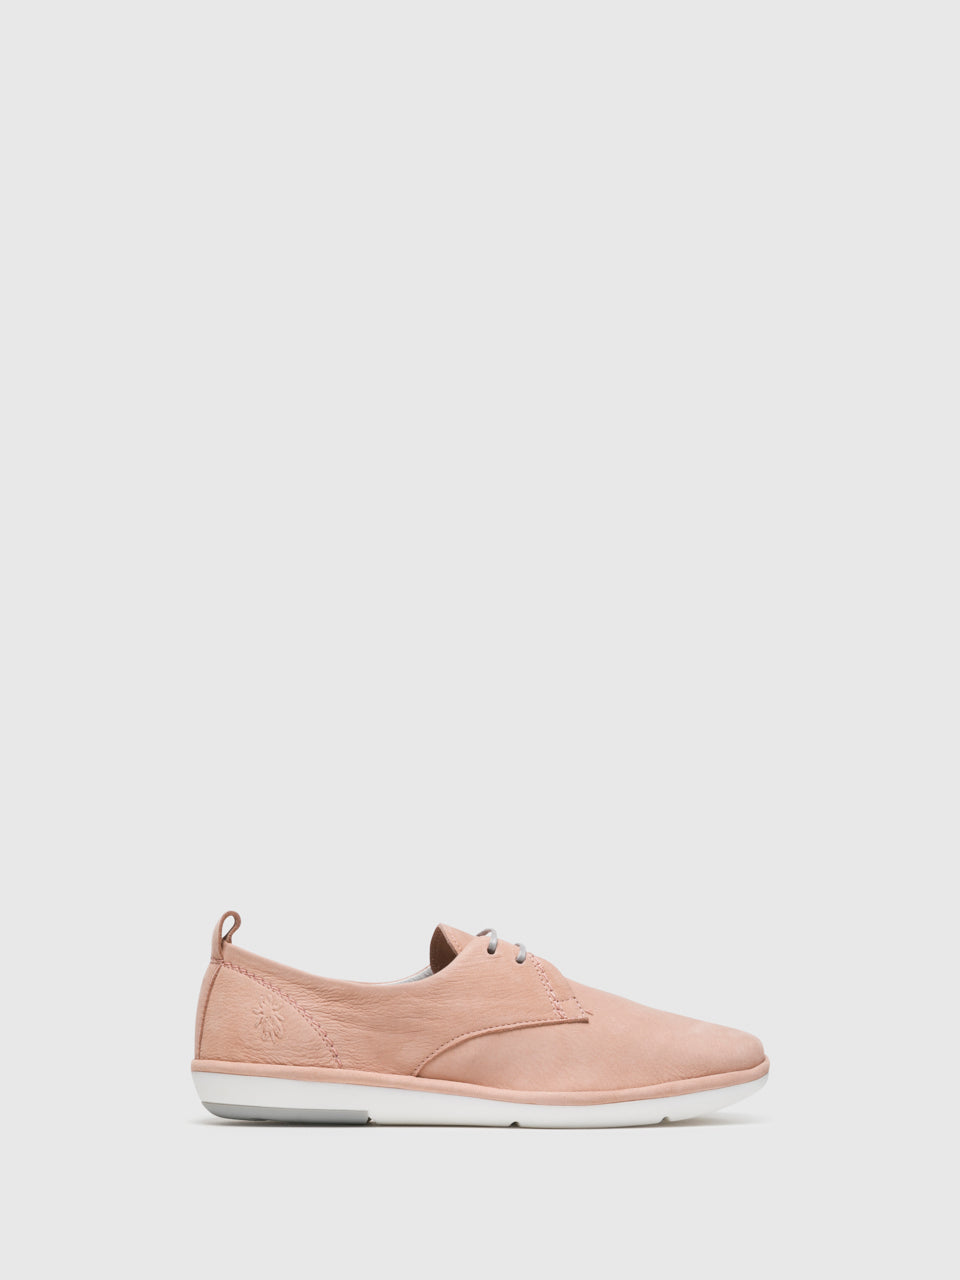 Fly London LightPink Lace-up Trainers